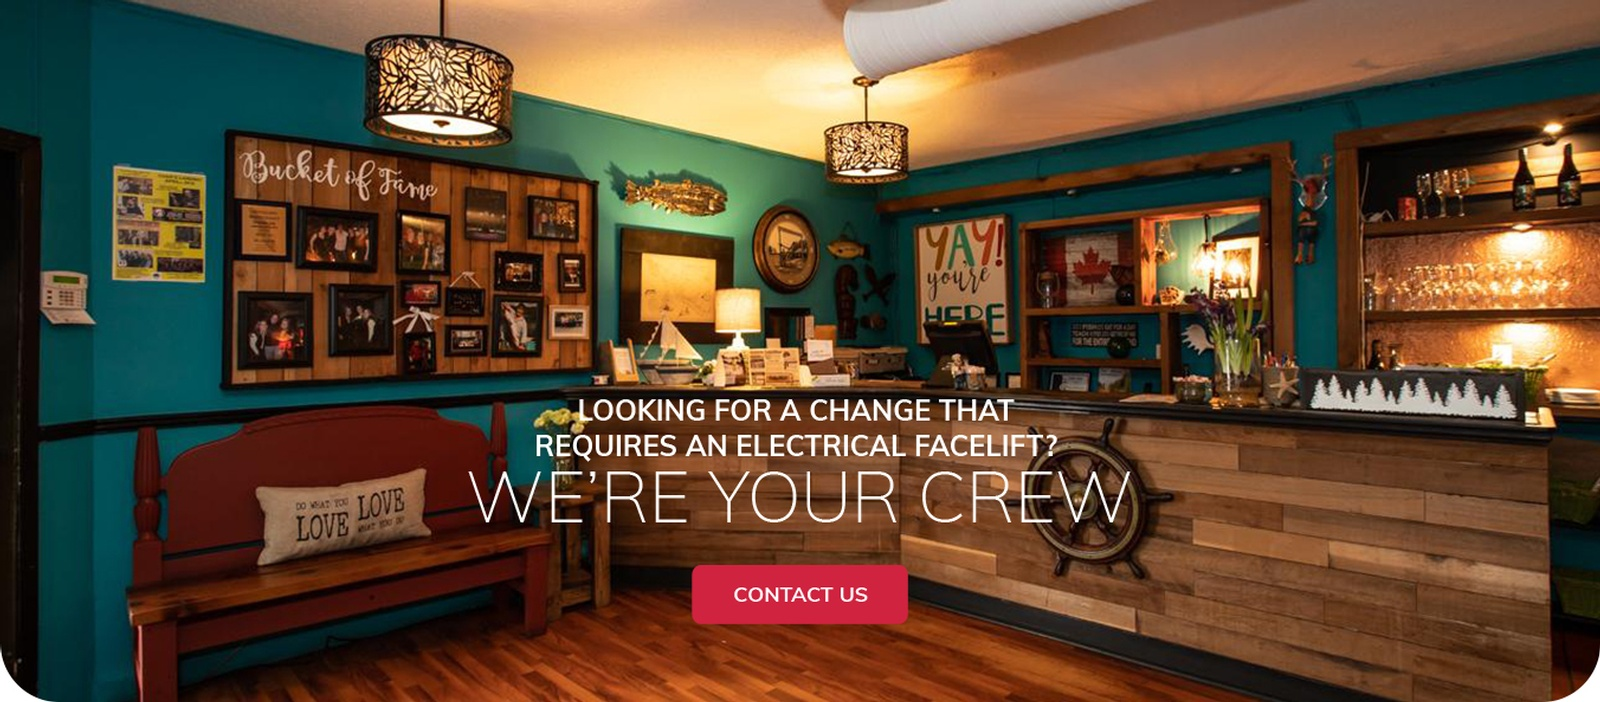 Looking for a Change That Requires an Electrical Facelift WE'RE YOUR CREW